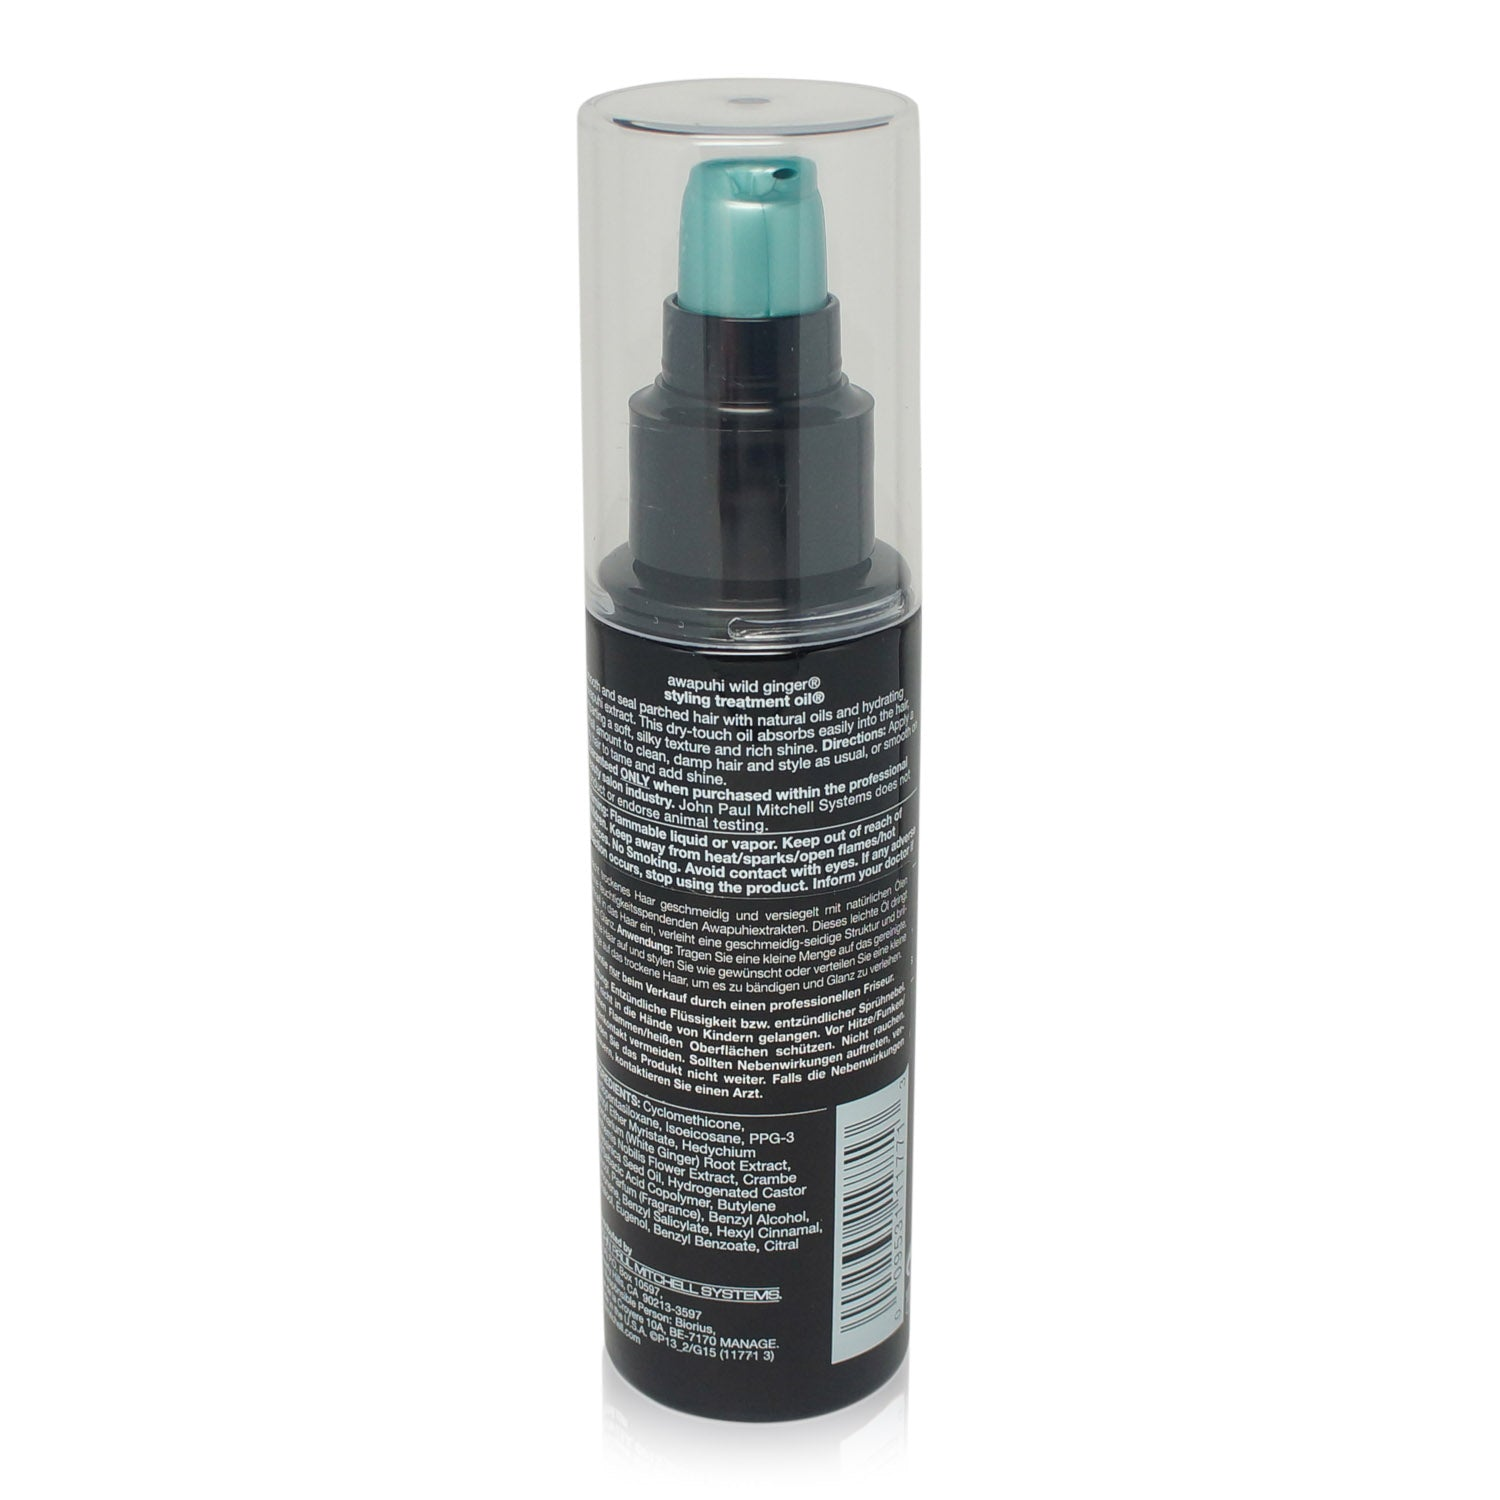 Paul Mitchell Awapuhi Wild Ginger Styling Treatment Oil 3.4 oz.